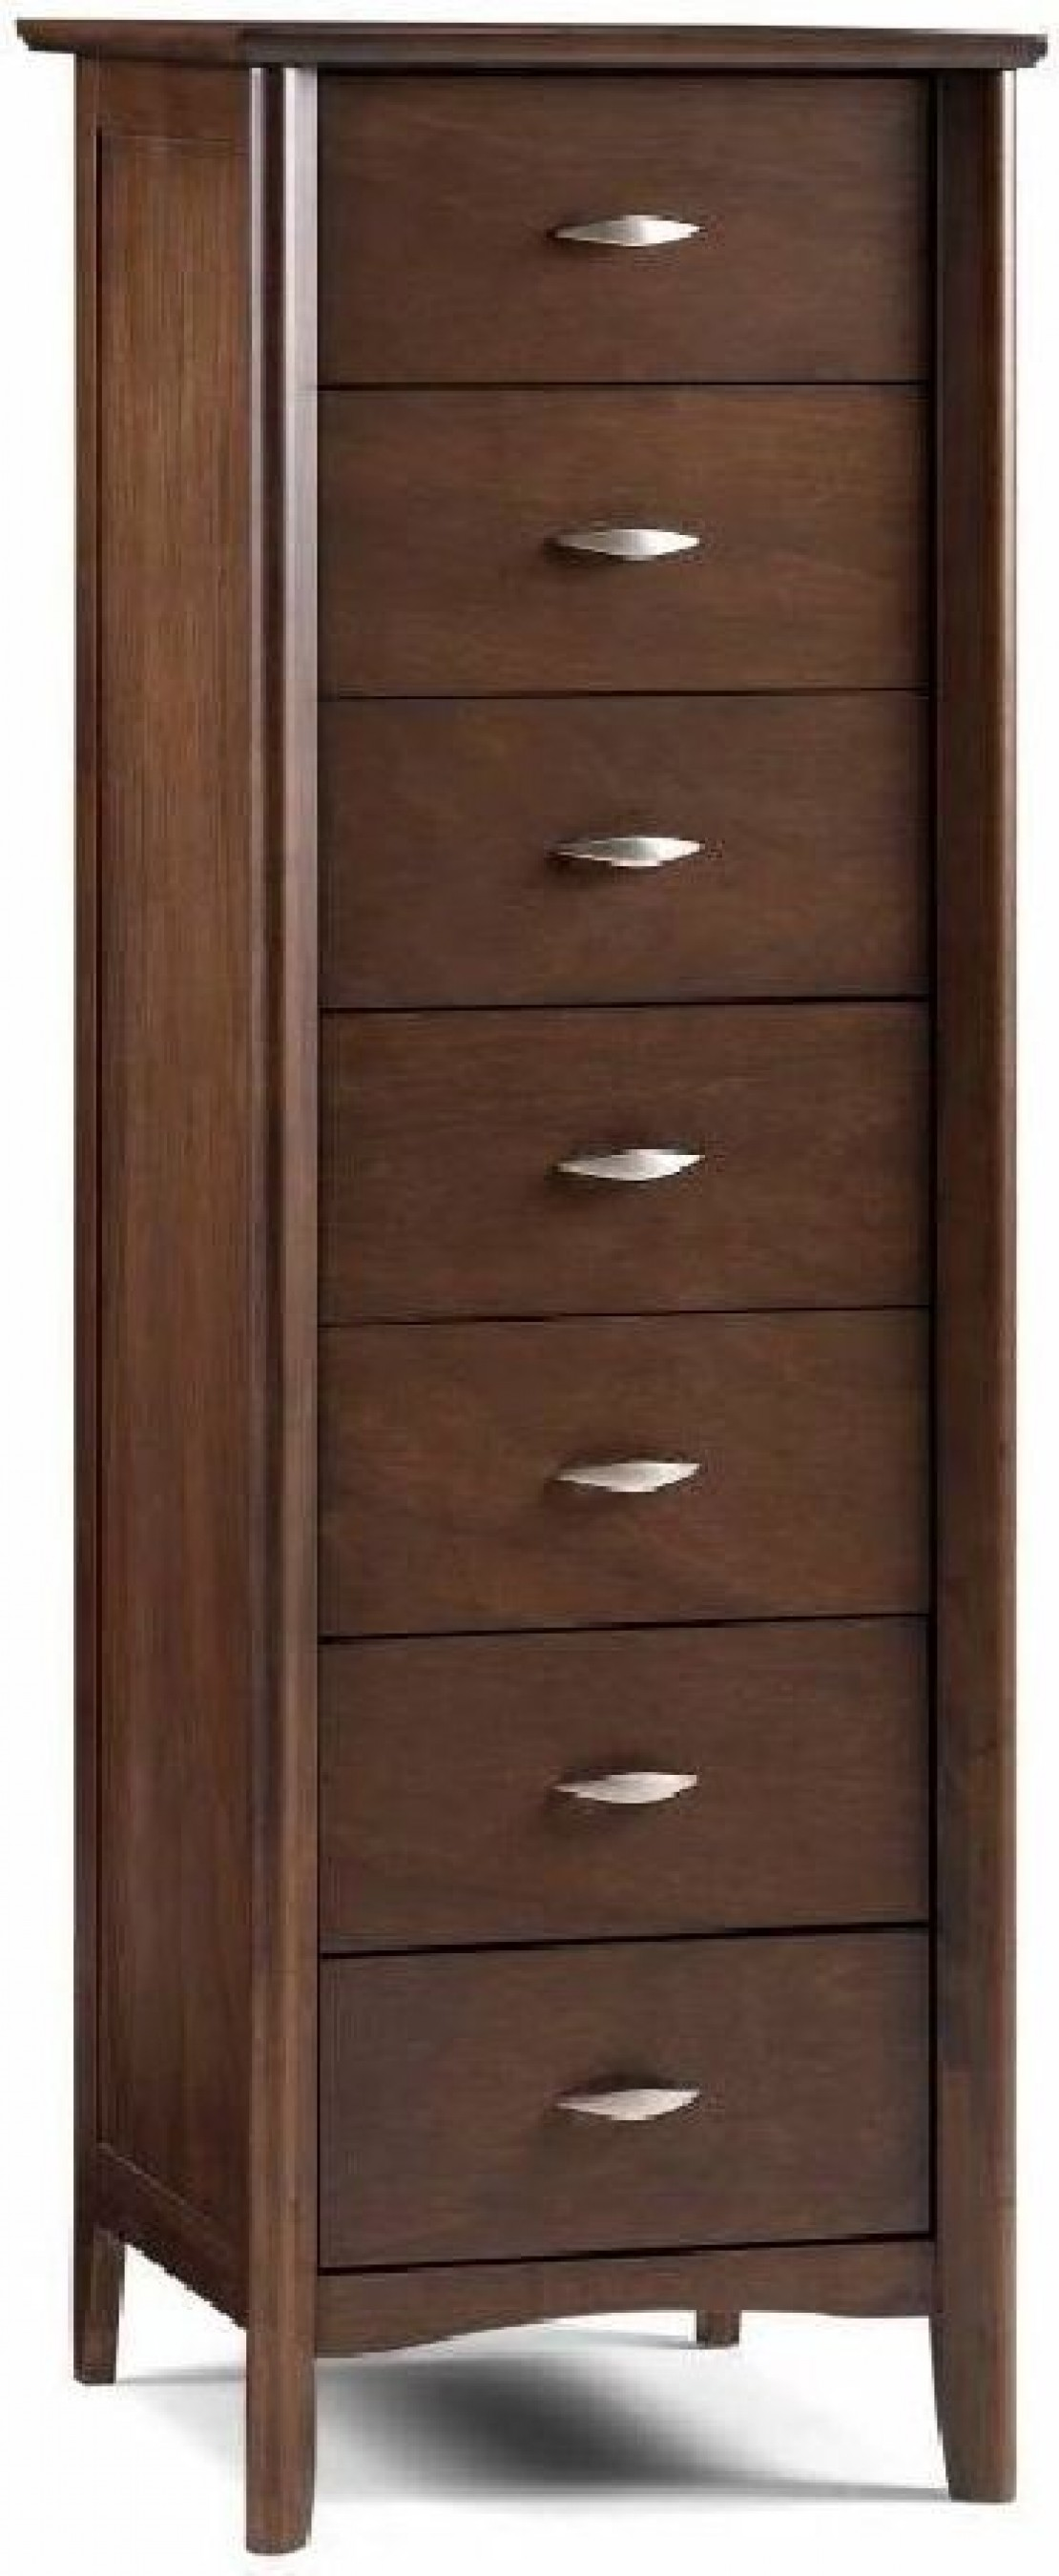 /_images/product-photos/julian-bowen-minuet-7-drawer-chest-a.jpg